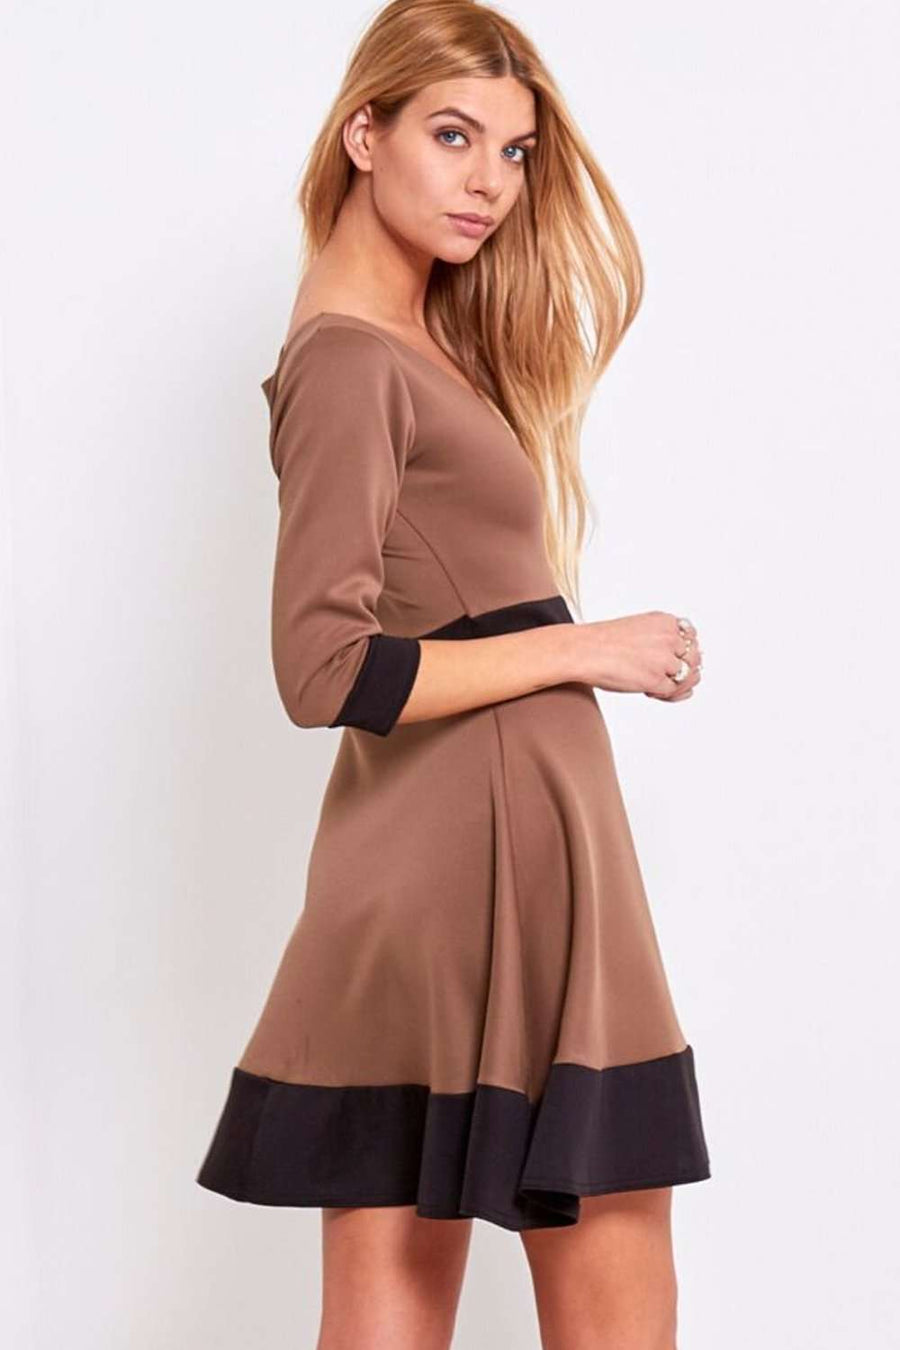 Paris Long Sleeve Paneled Mini Skater Dress - bejealous-com